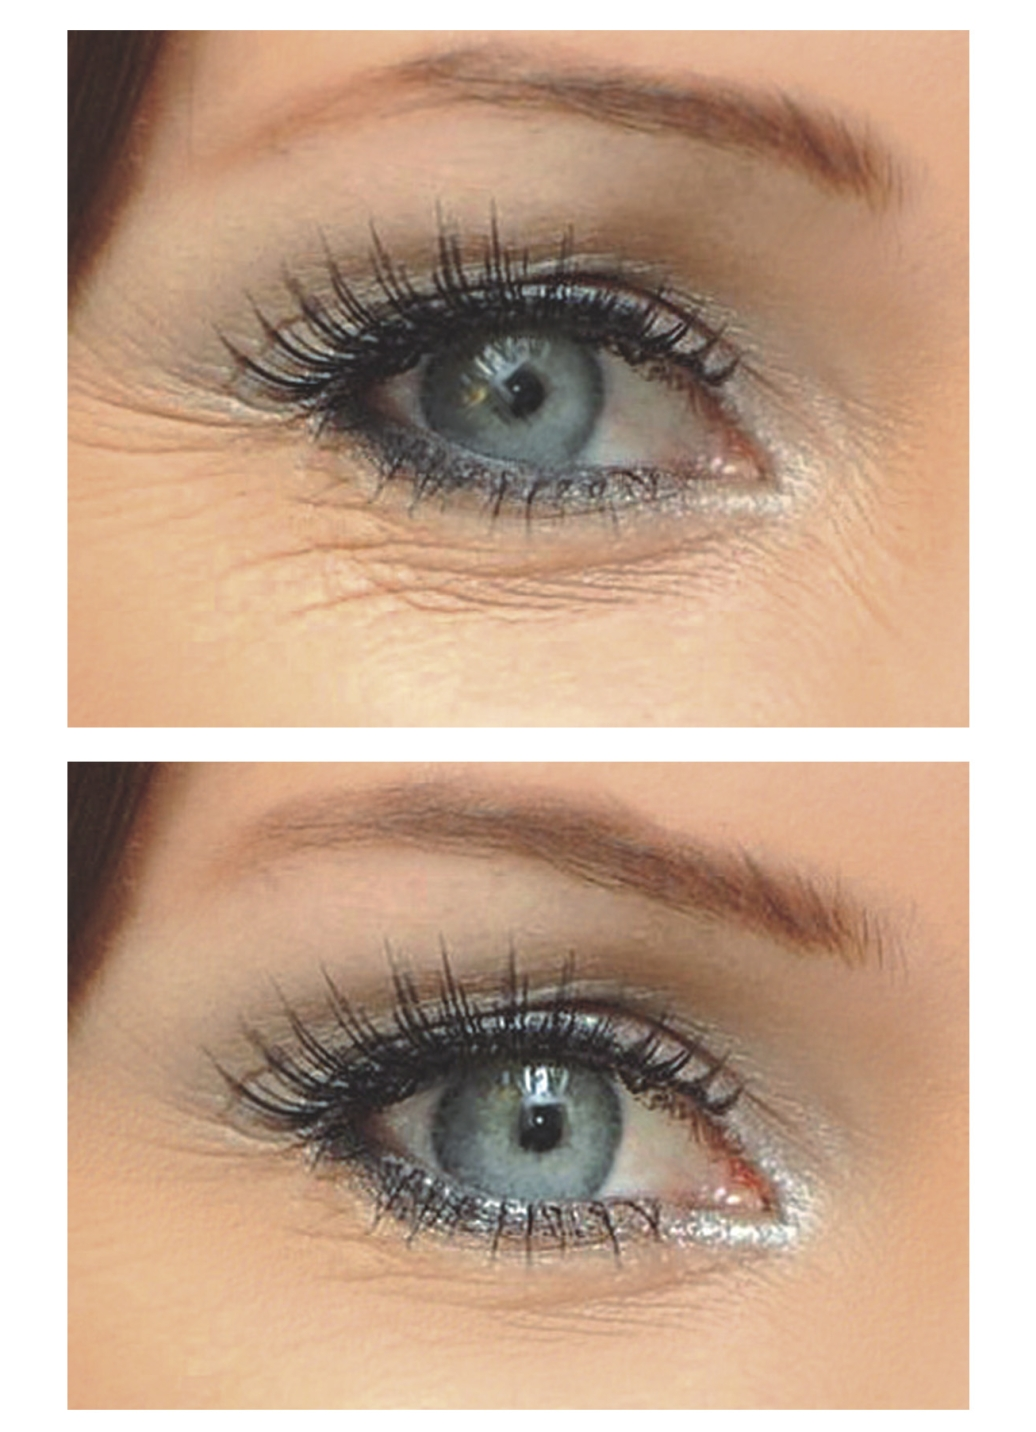 How To Get Rid Of Premature Wrinkles Under Eyes Naturally